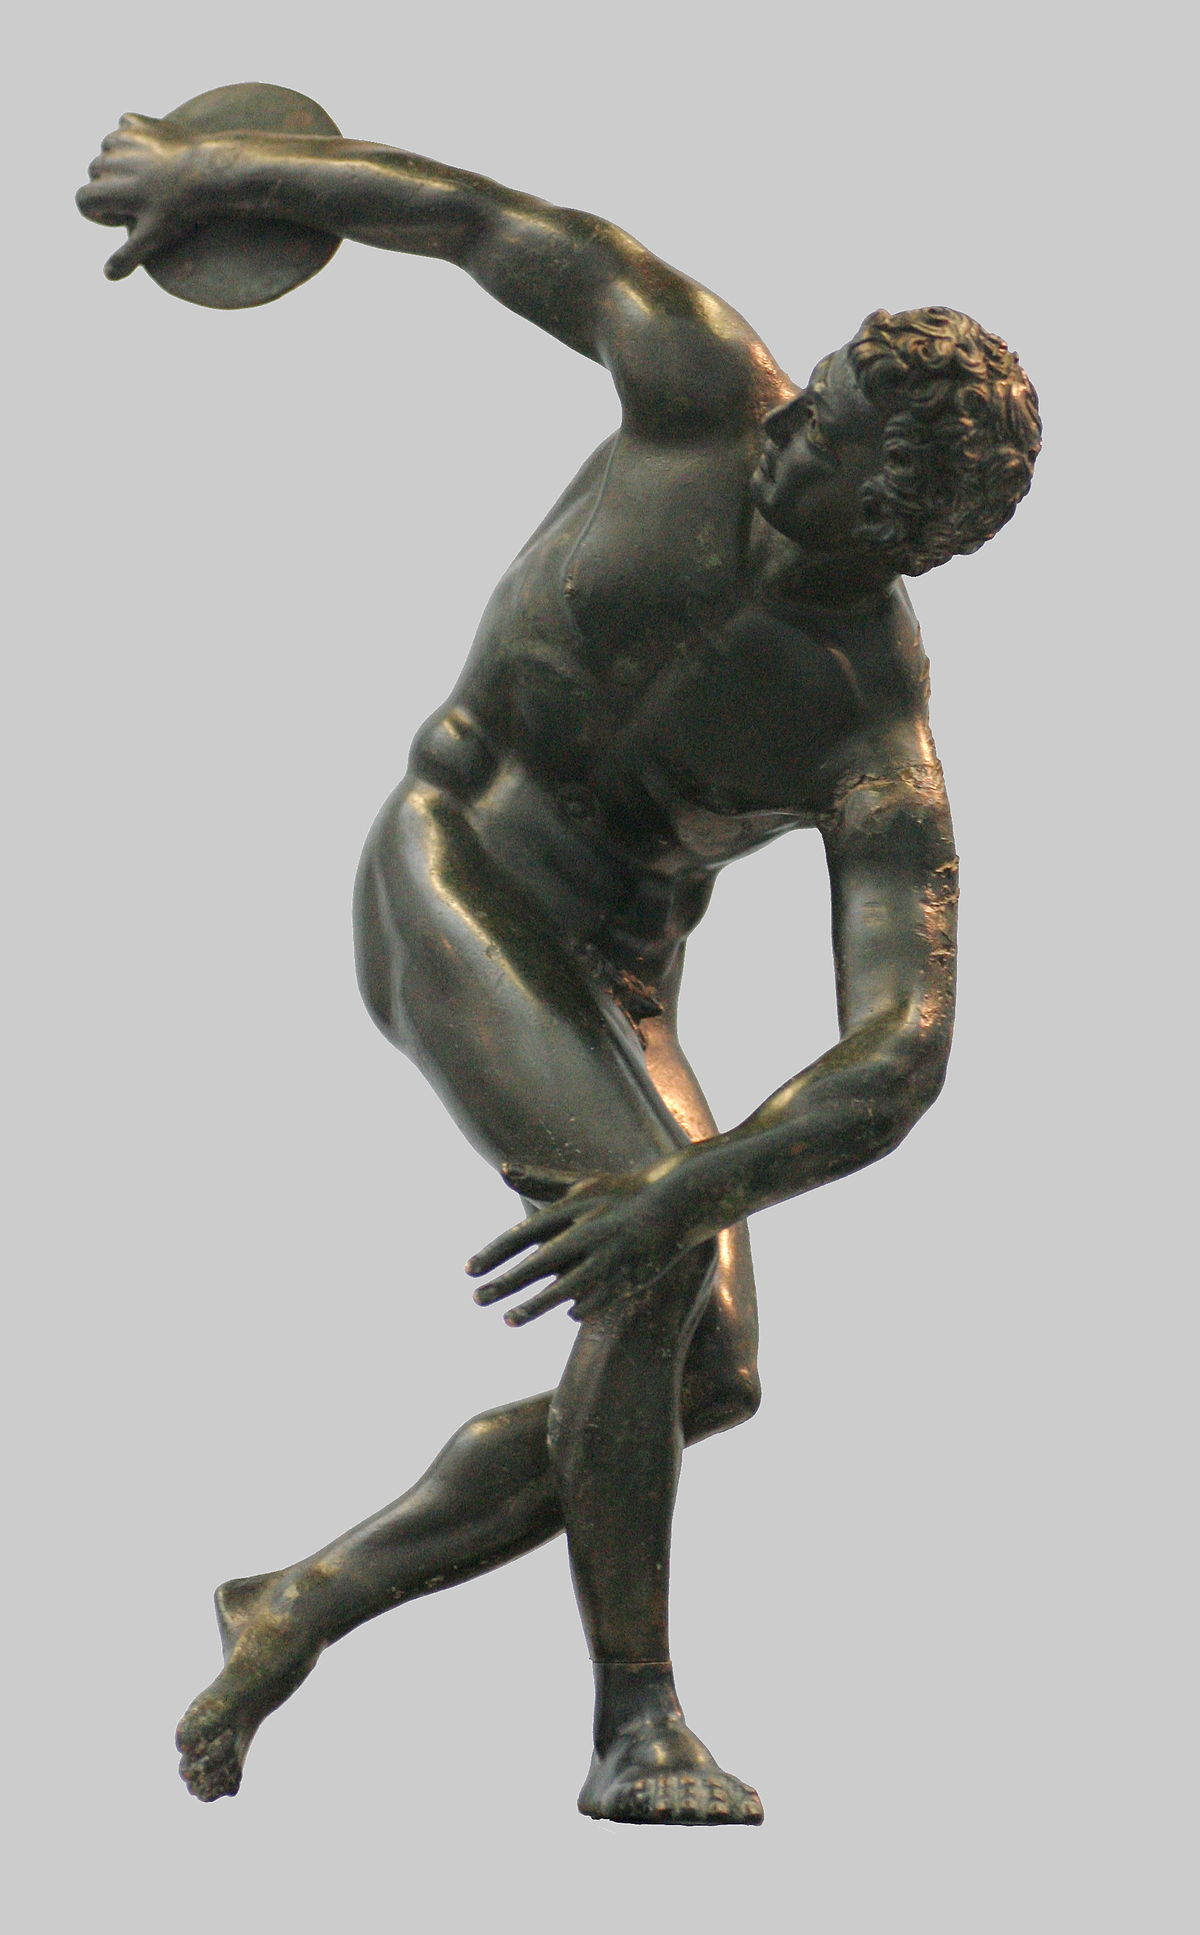 ancient greek vase replicas of discobolus wikipedia inside 1200px greek statue discus thrower 2 century ac